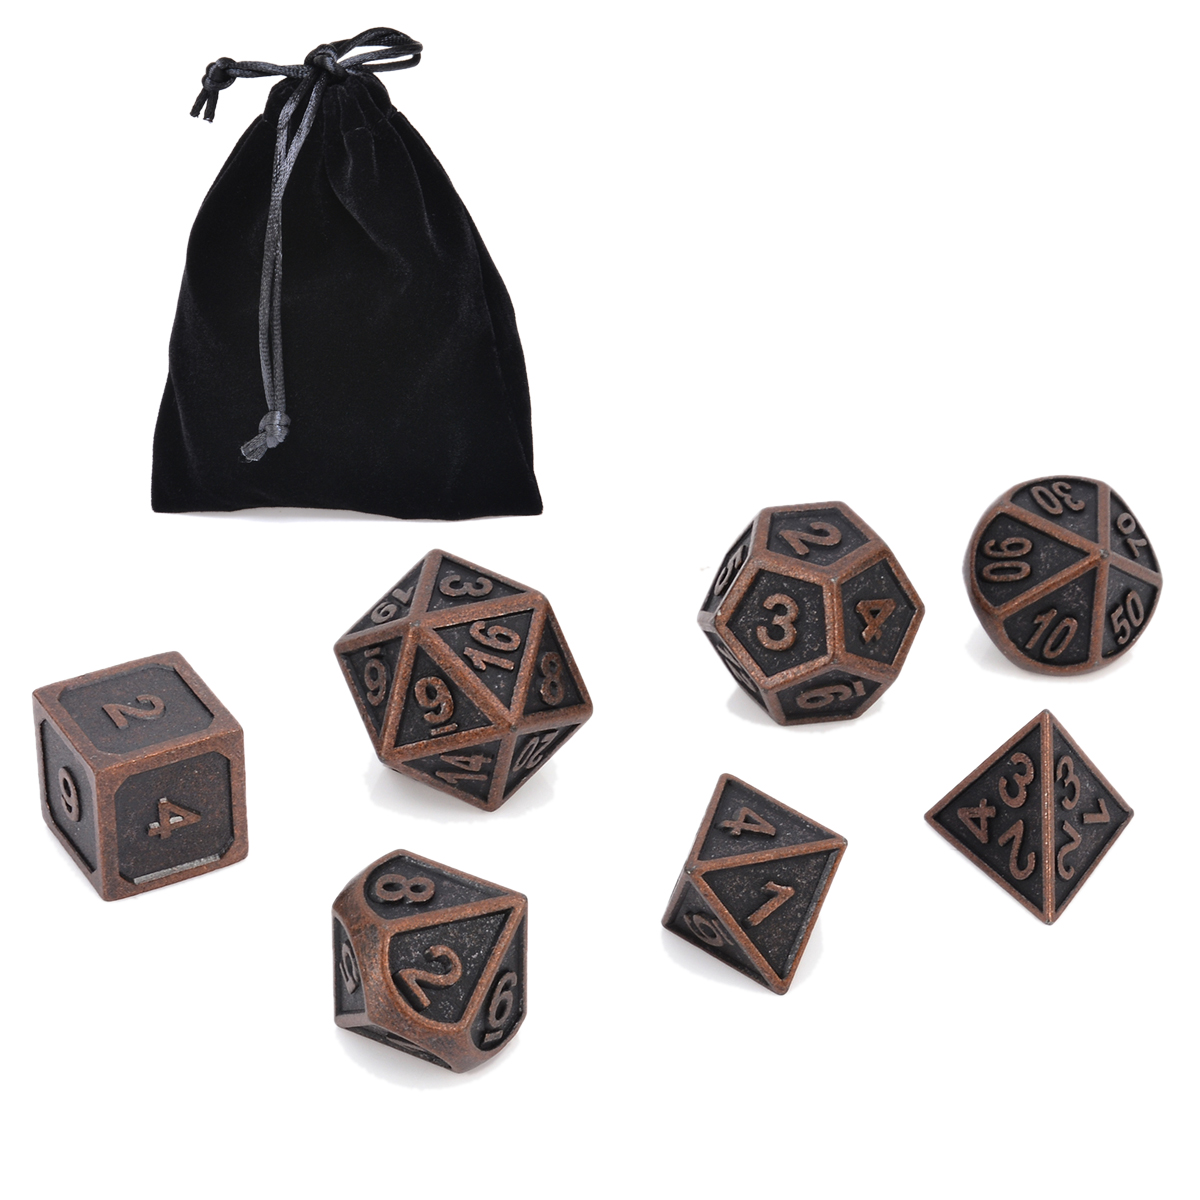 7Pcs Copper Color Retro Metal Polyhedral Dice Dungeons & Dragons MTG SET Table Board Games Outdoor Bar Family Party With Bag top quality 126pcs polyhedral dice set dragons dices dnd rpg mtg table games dice activity multi sided games dices 18 set